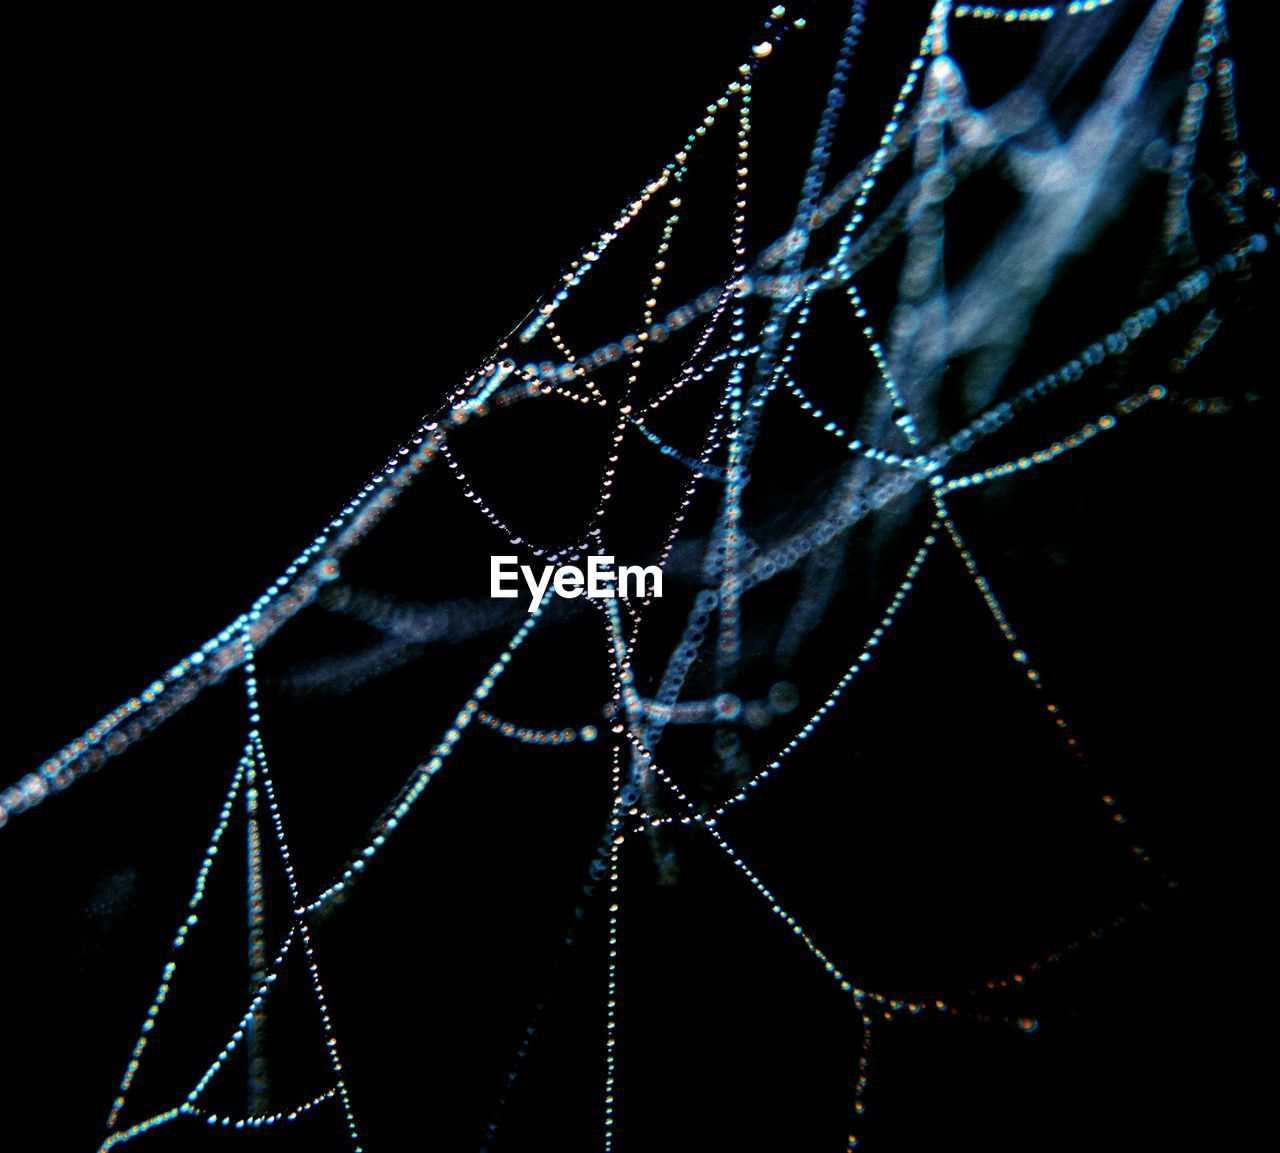 Close-Up Of Wet Spider Web At Night